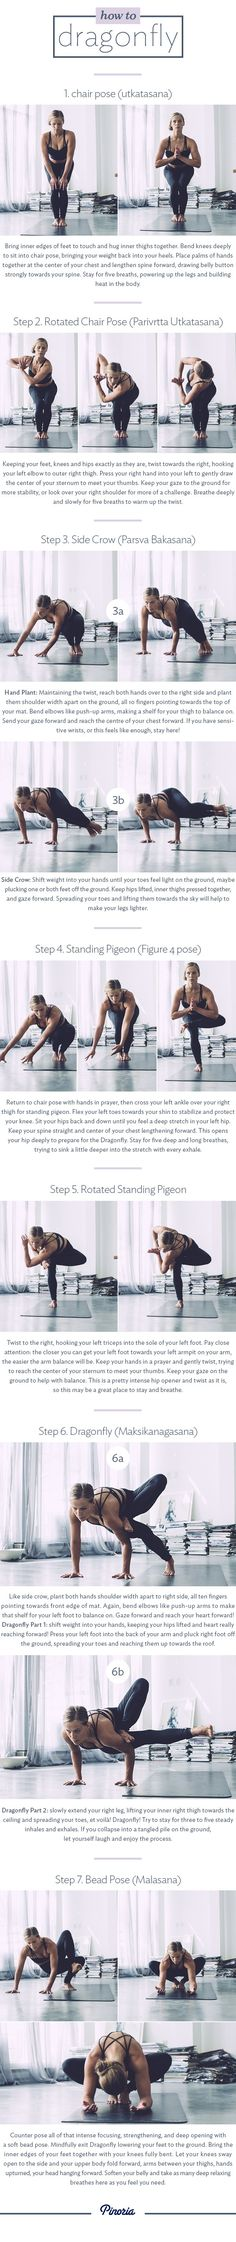 how to make dragonfly pose